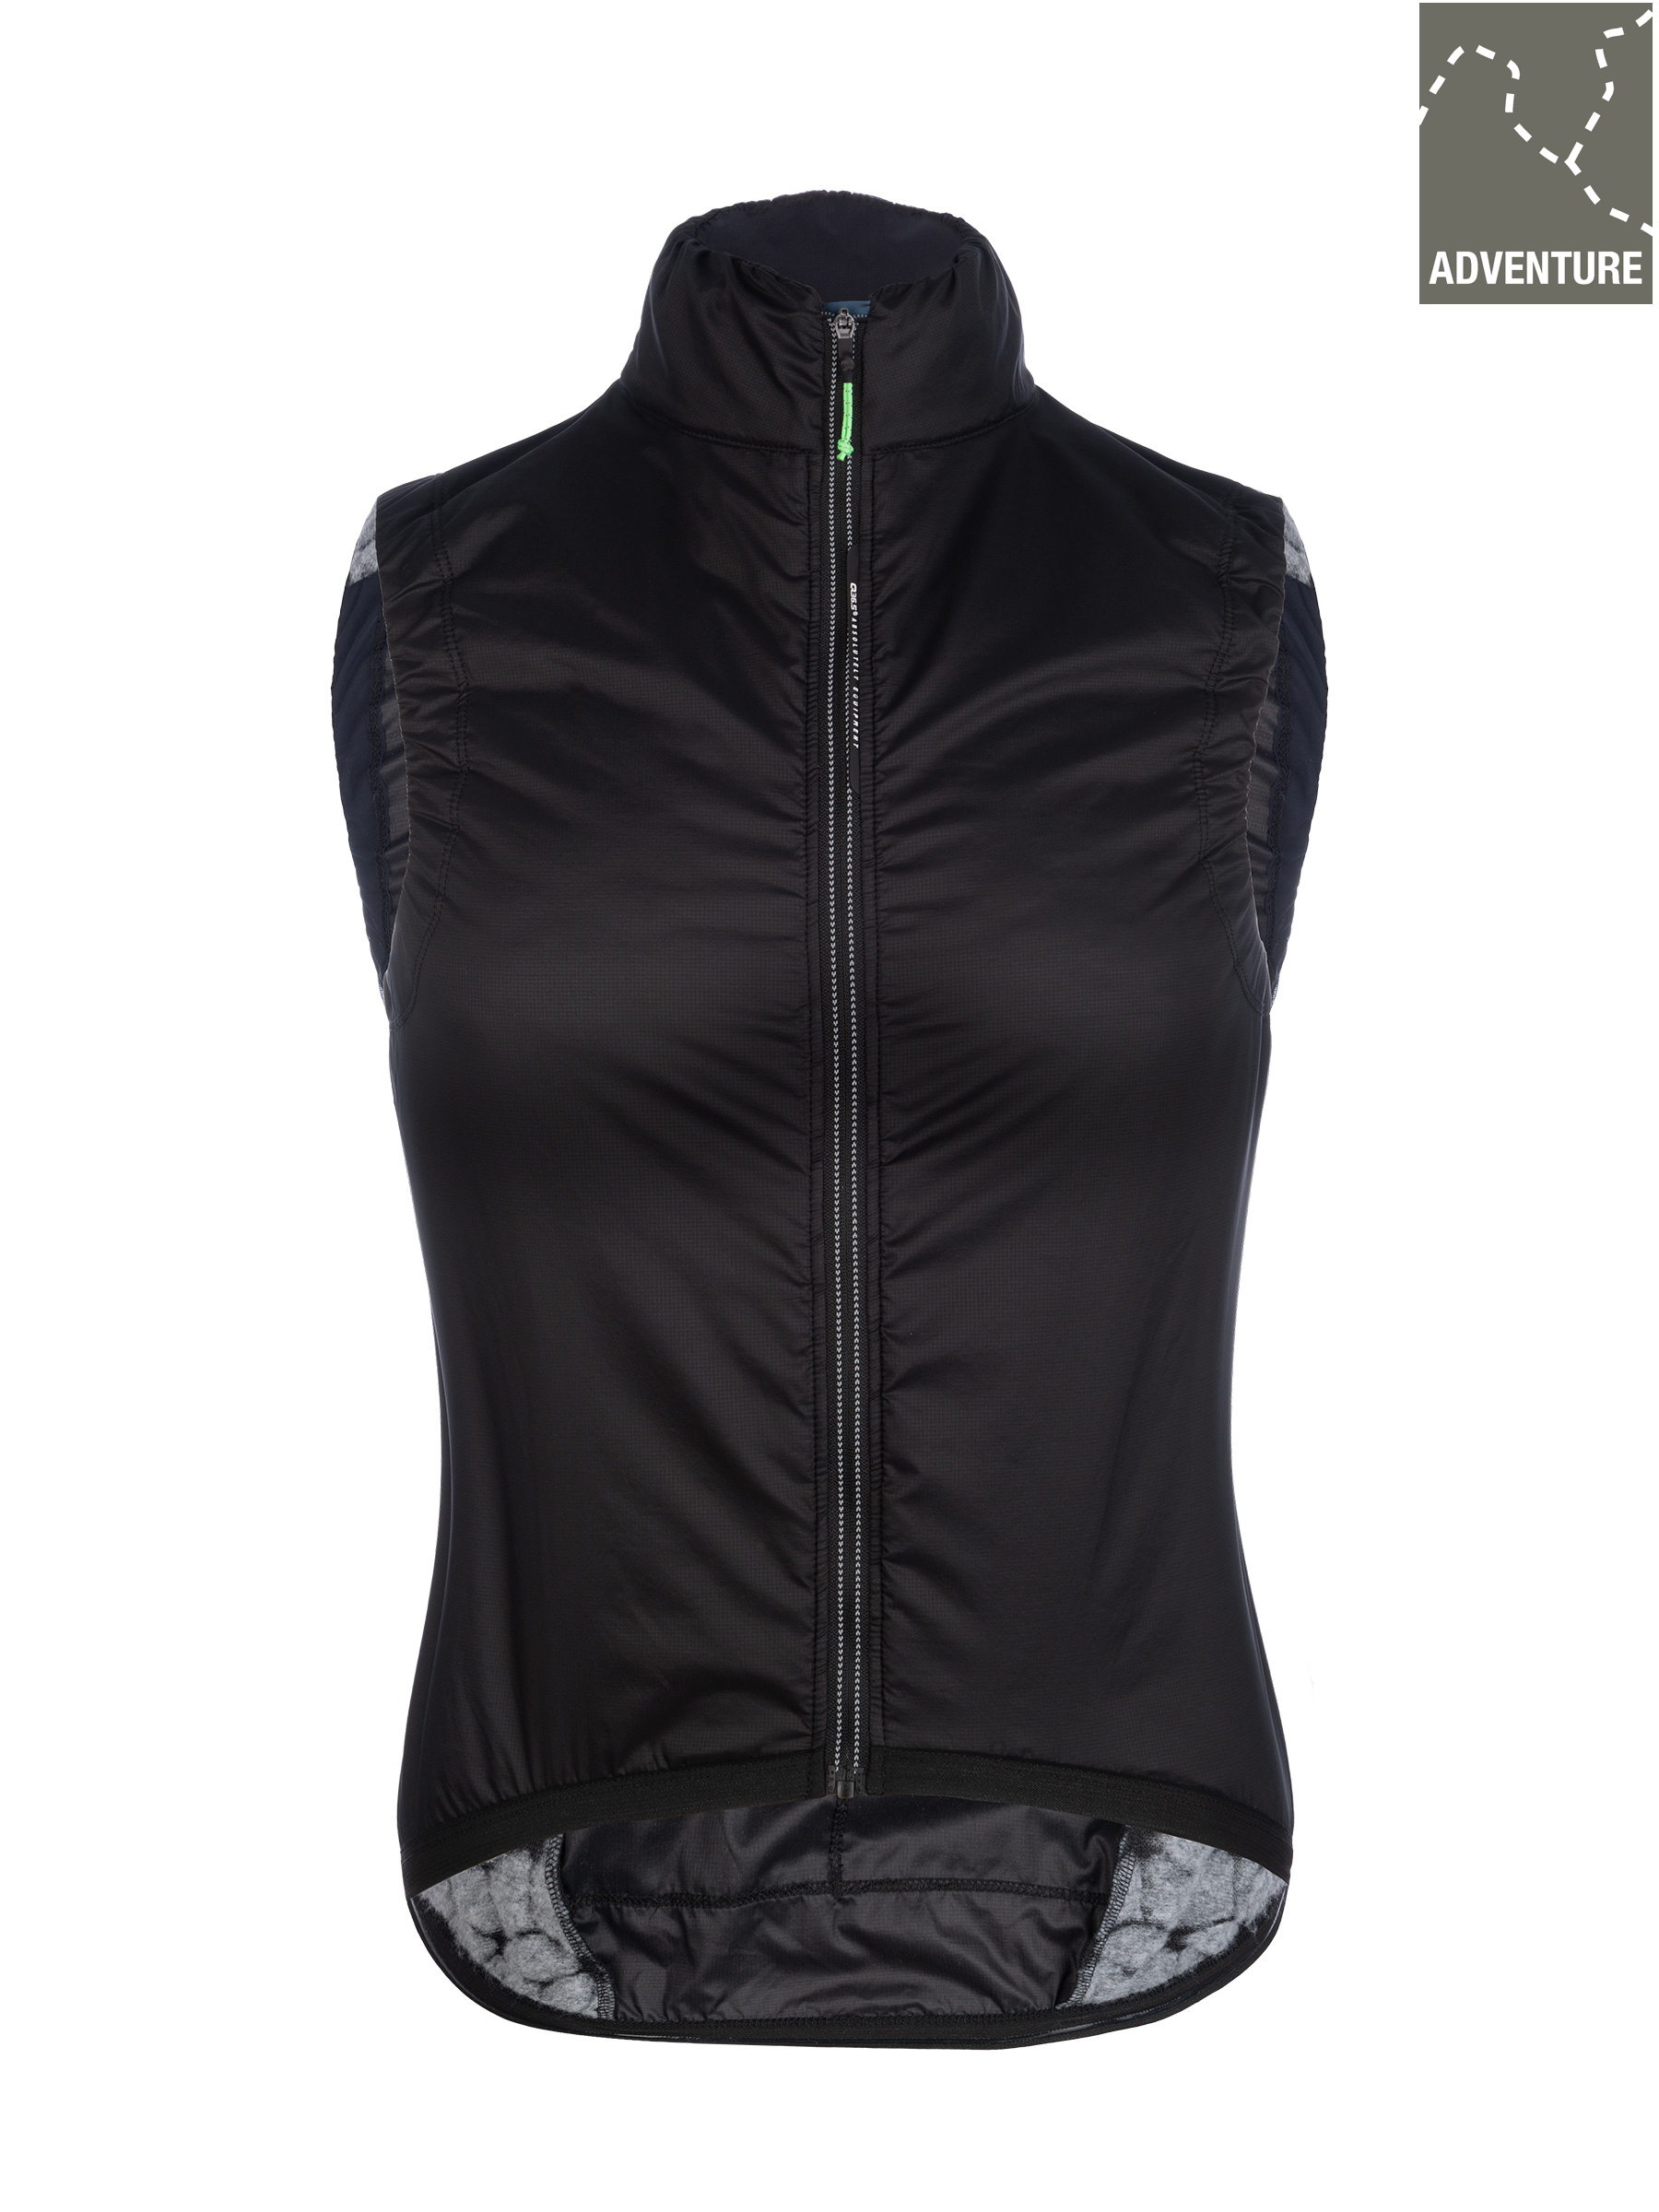 womens-adventure-cycling-insulation-vest-black-061W.2-product